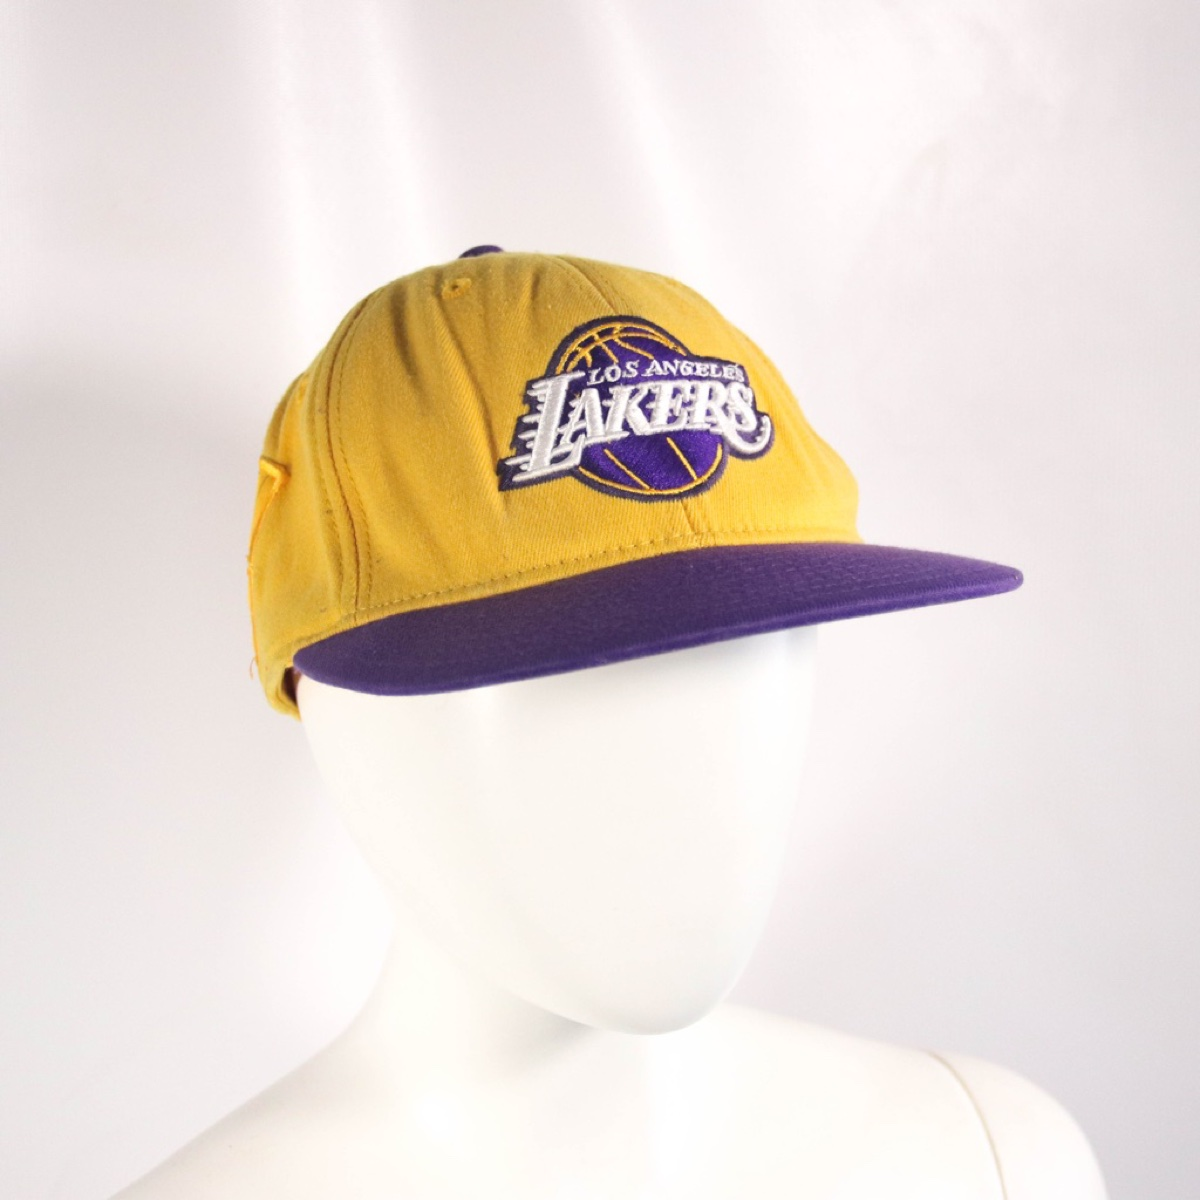 Los Angeles Lakers Adidas Embroidered Fitted NBA Basketball Hat Cap Size L / XL